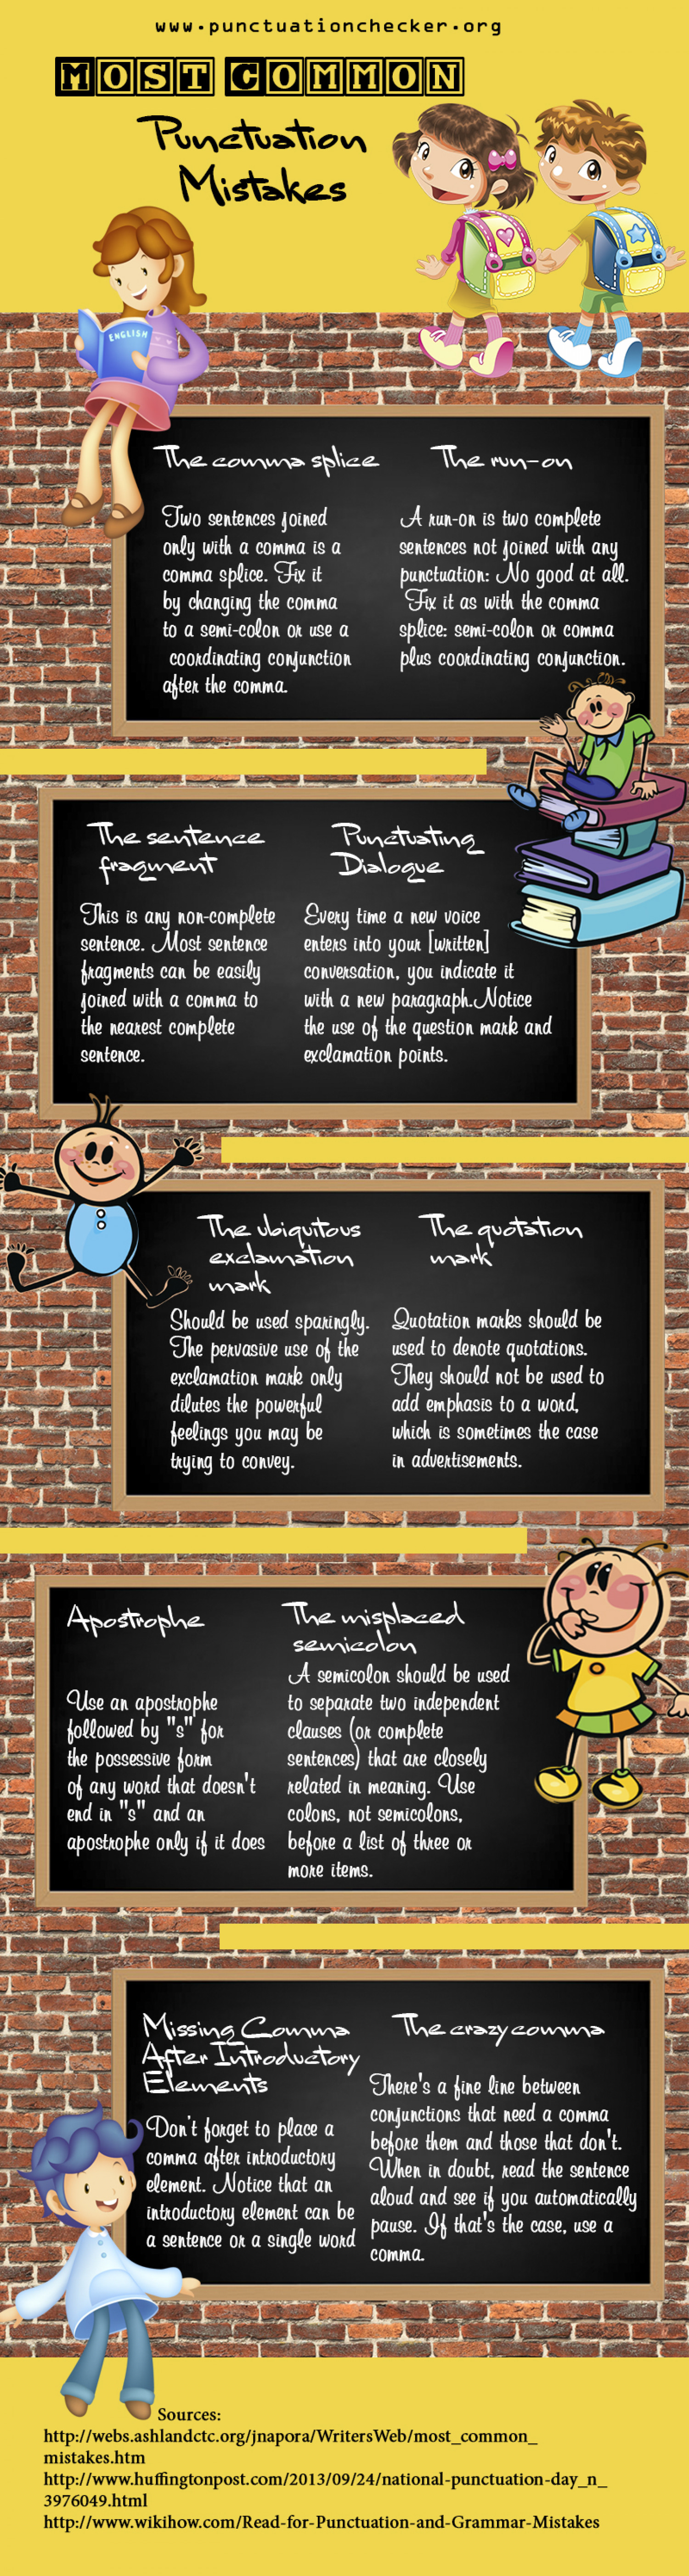 Most Common Punctuation Errors Infographic